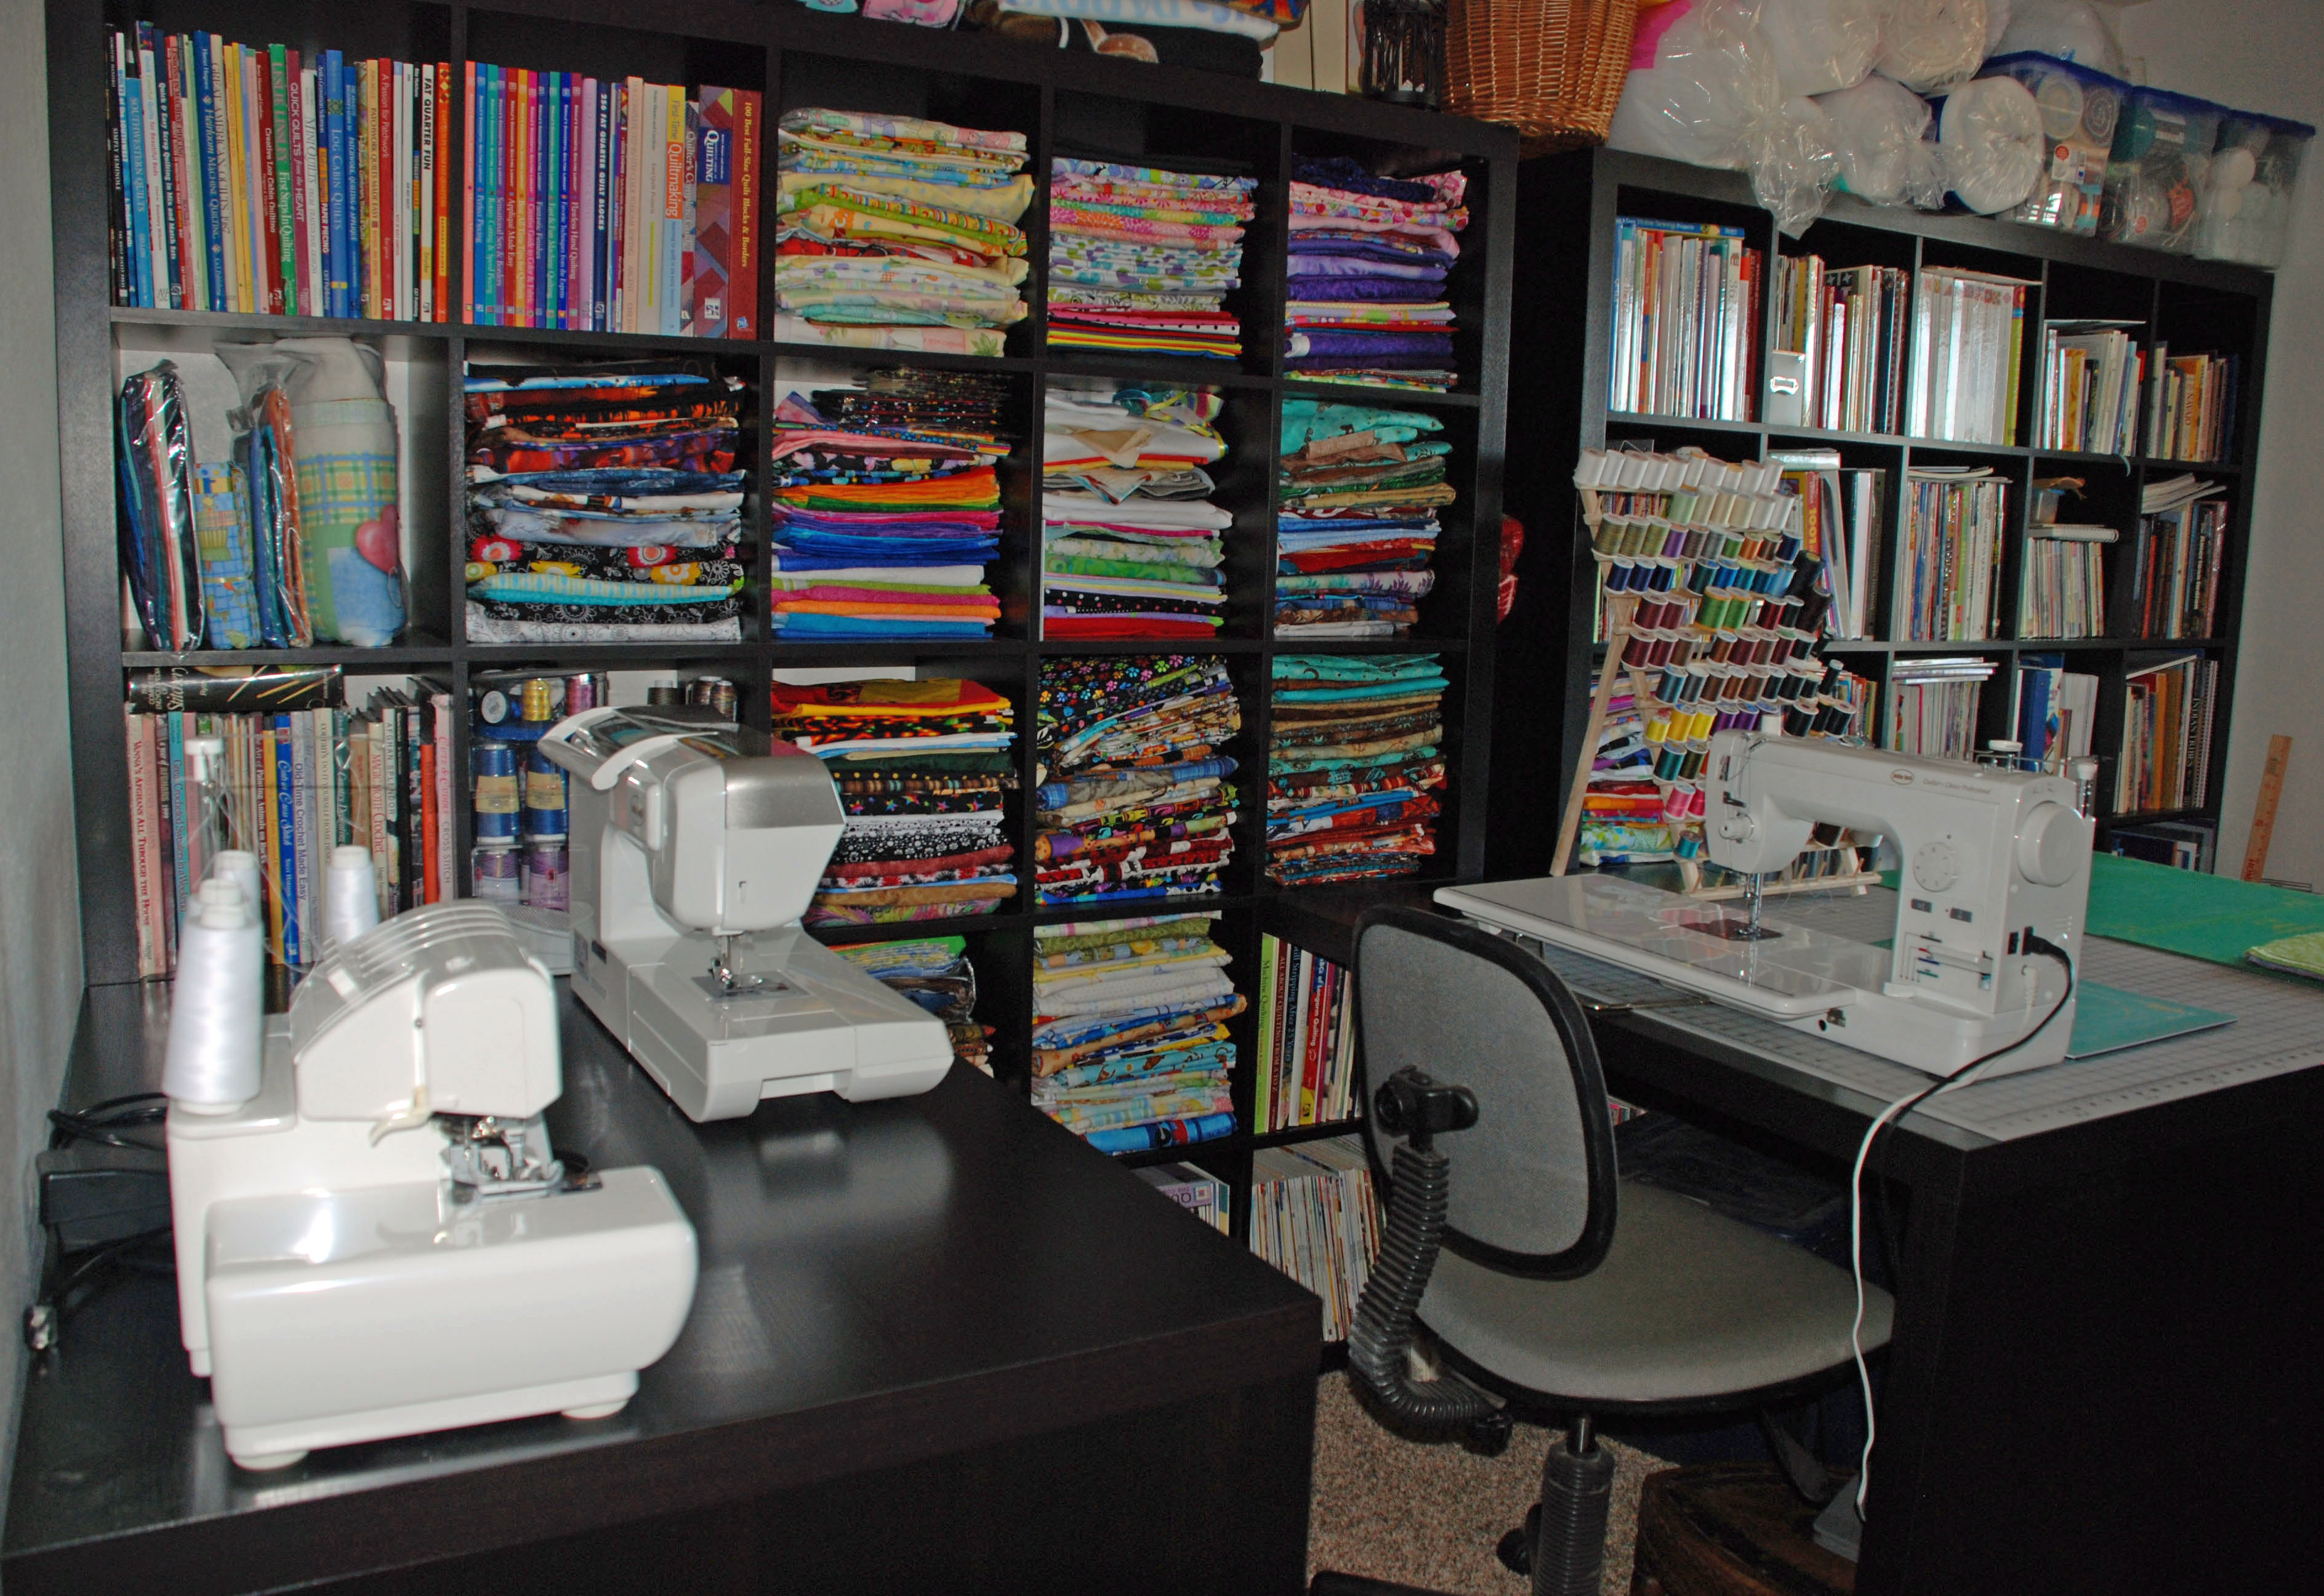 My New Sewing Quilting Room Awaits Me